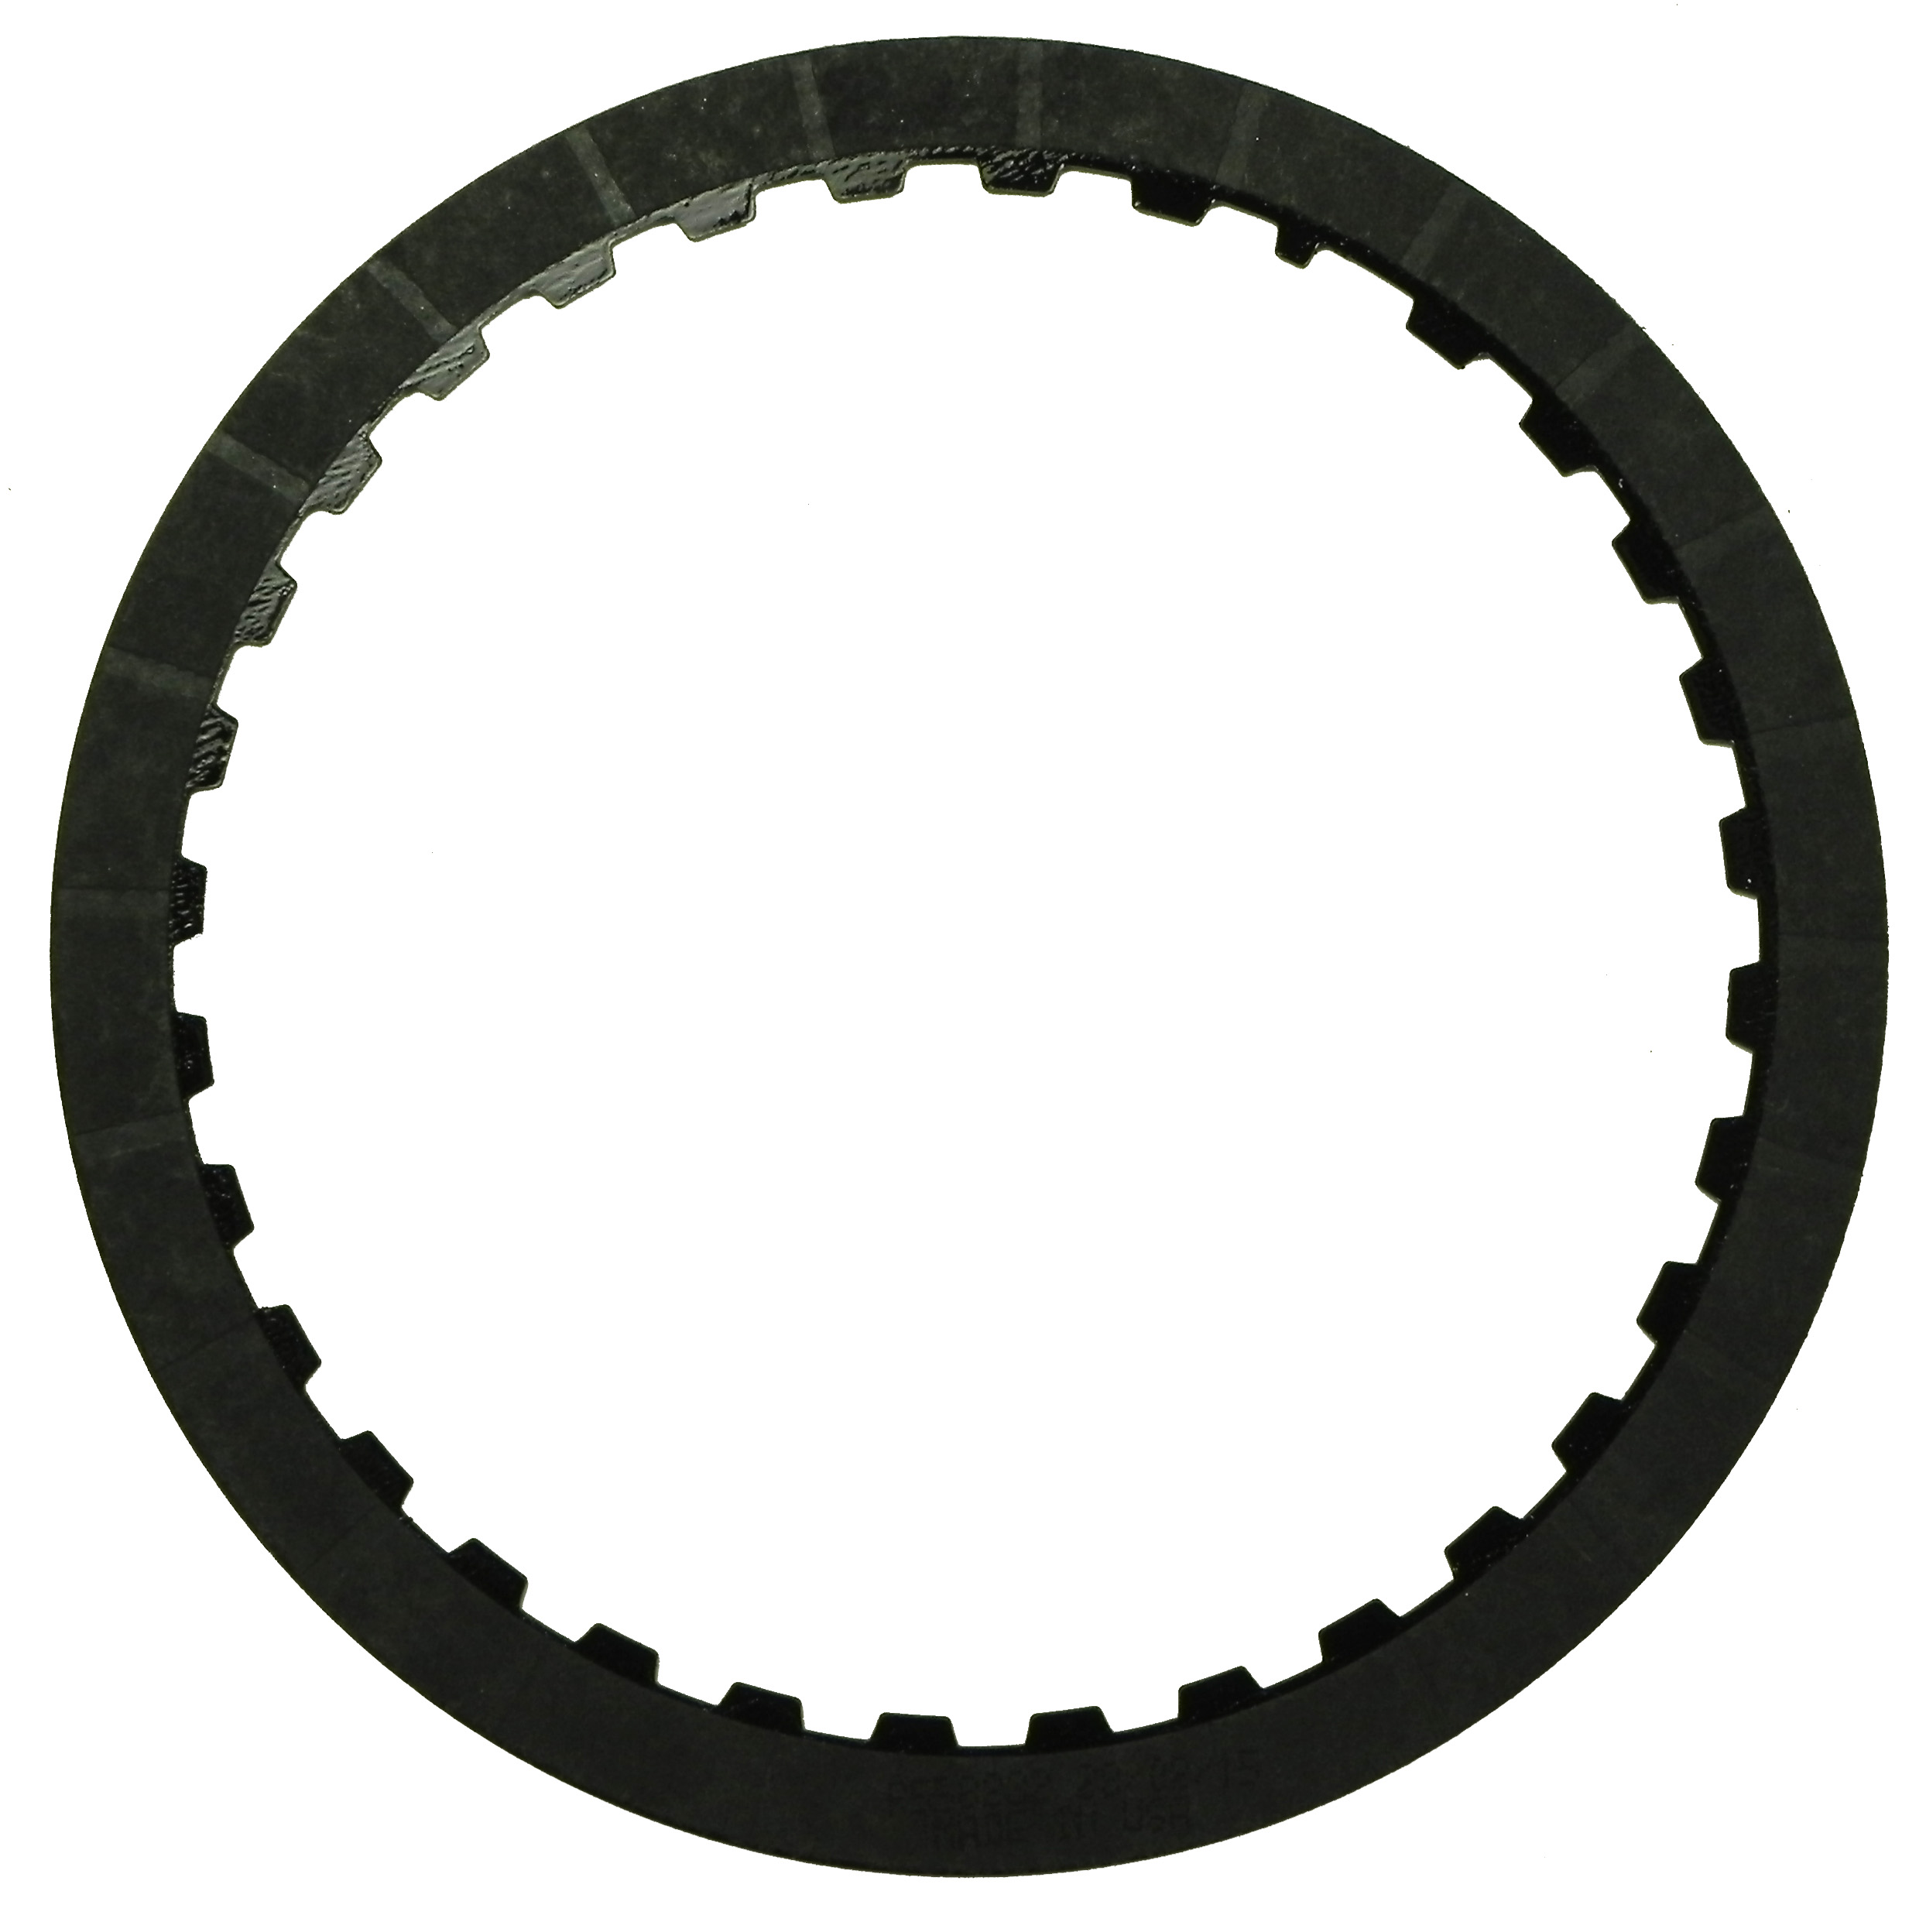 R558232 | 1988-ON Friction Clutch Plate High Energy Low, Reverse, 2nd Design High Energy